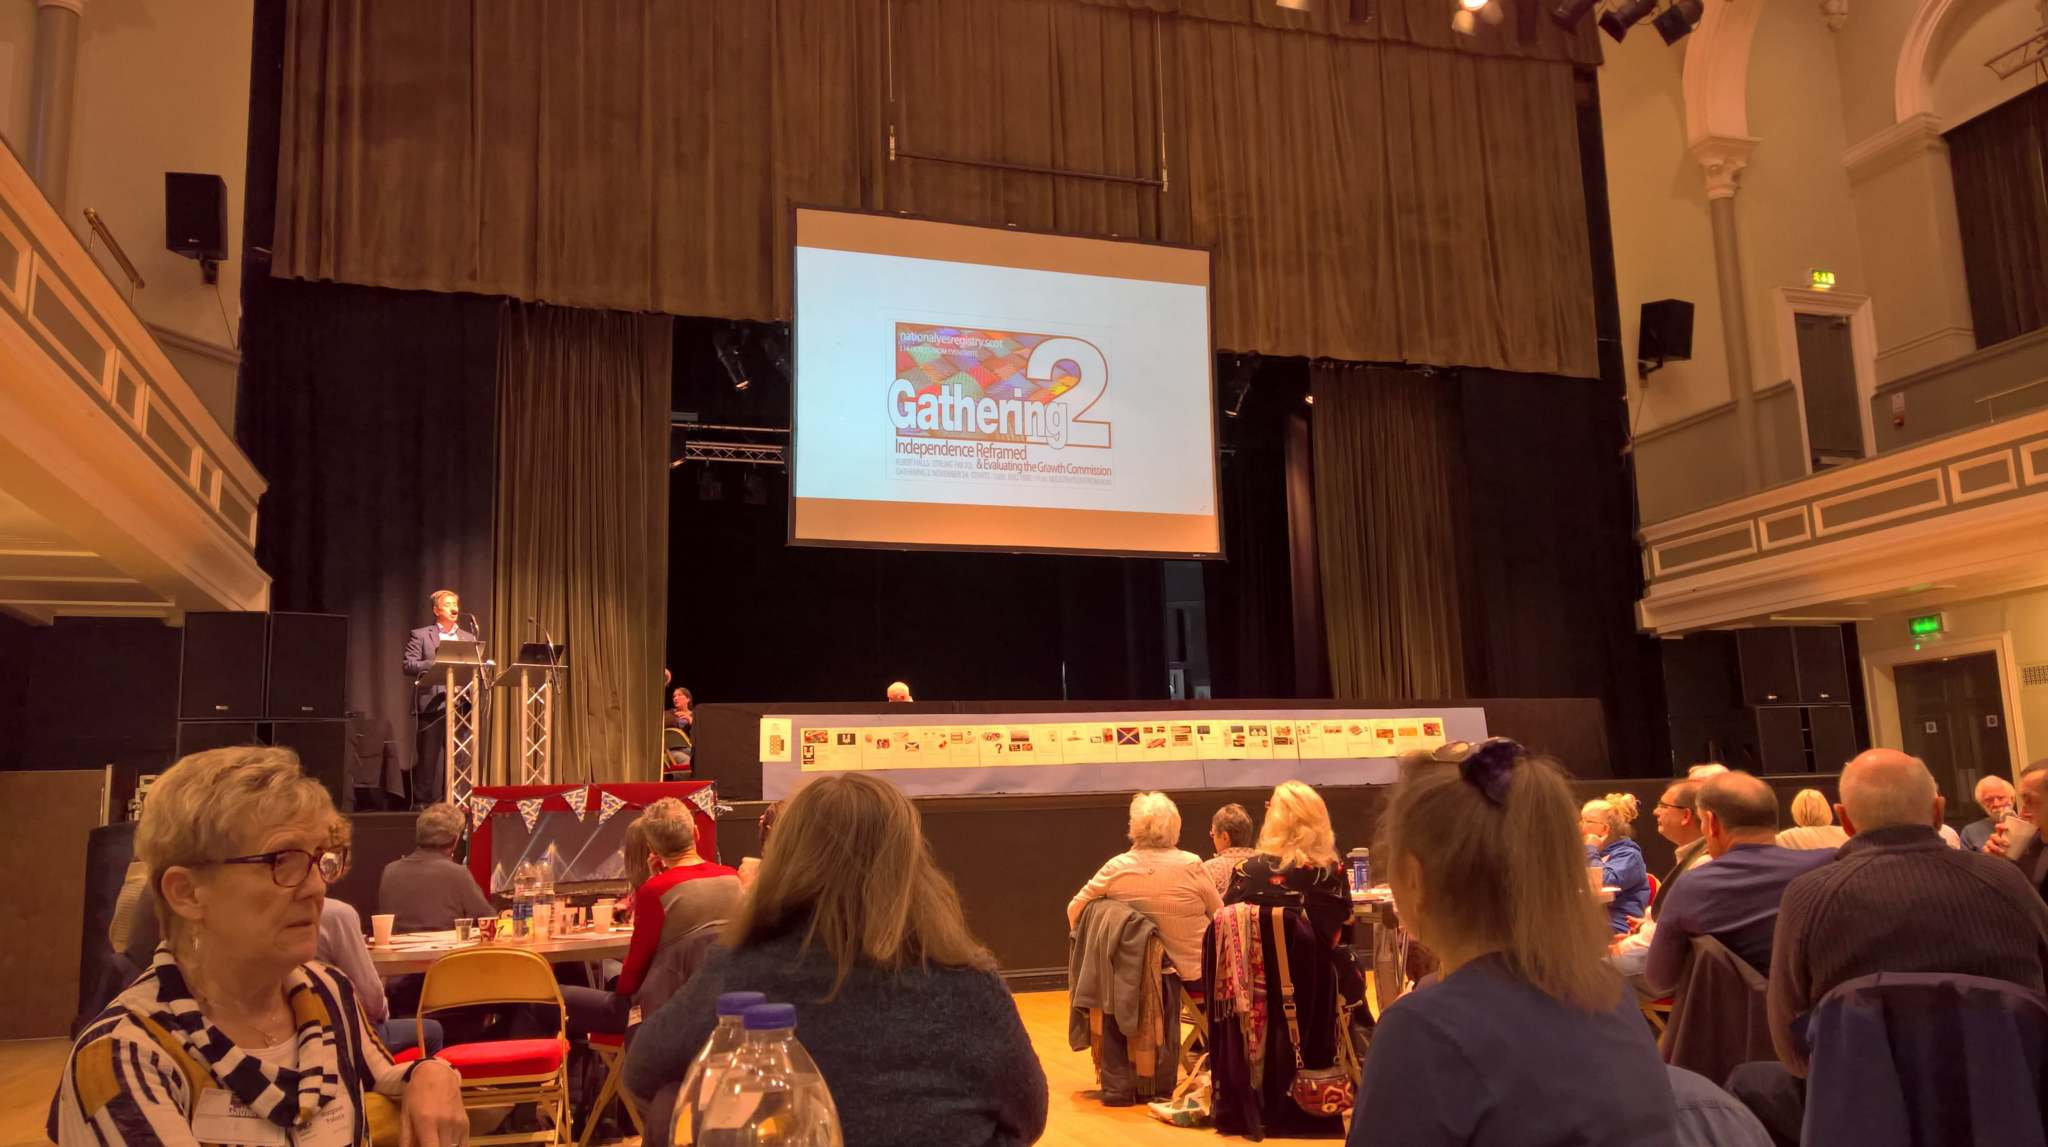 The Gathering 2, held in Stirling's Albert Halls, was yet another reminder of the flurry of activity taking place within the Yes movement at the moment. Photograph: Ruth Watson